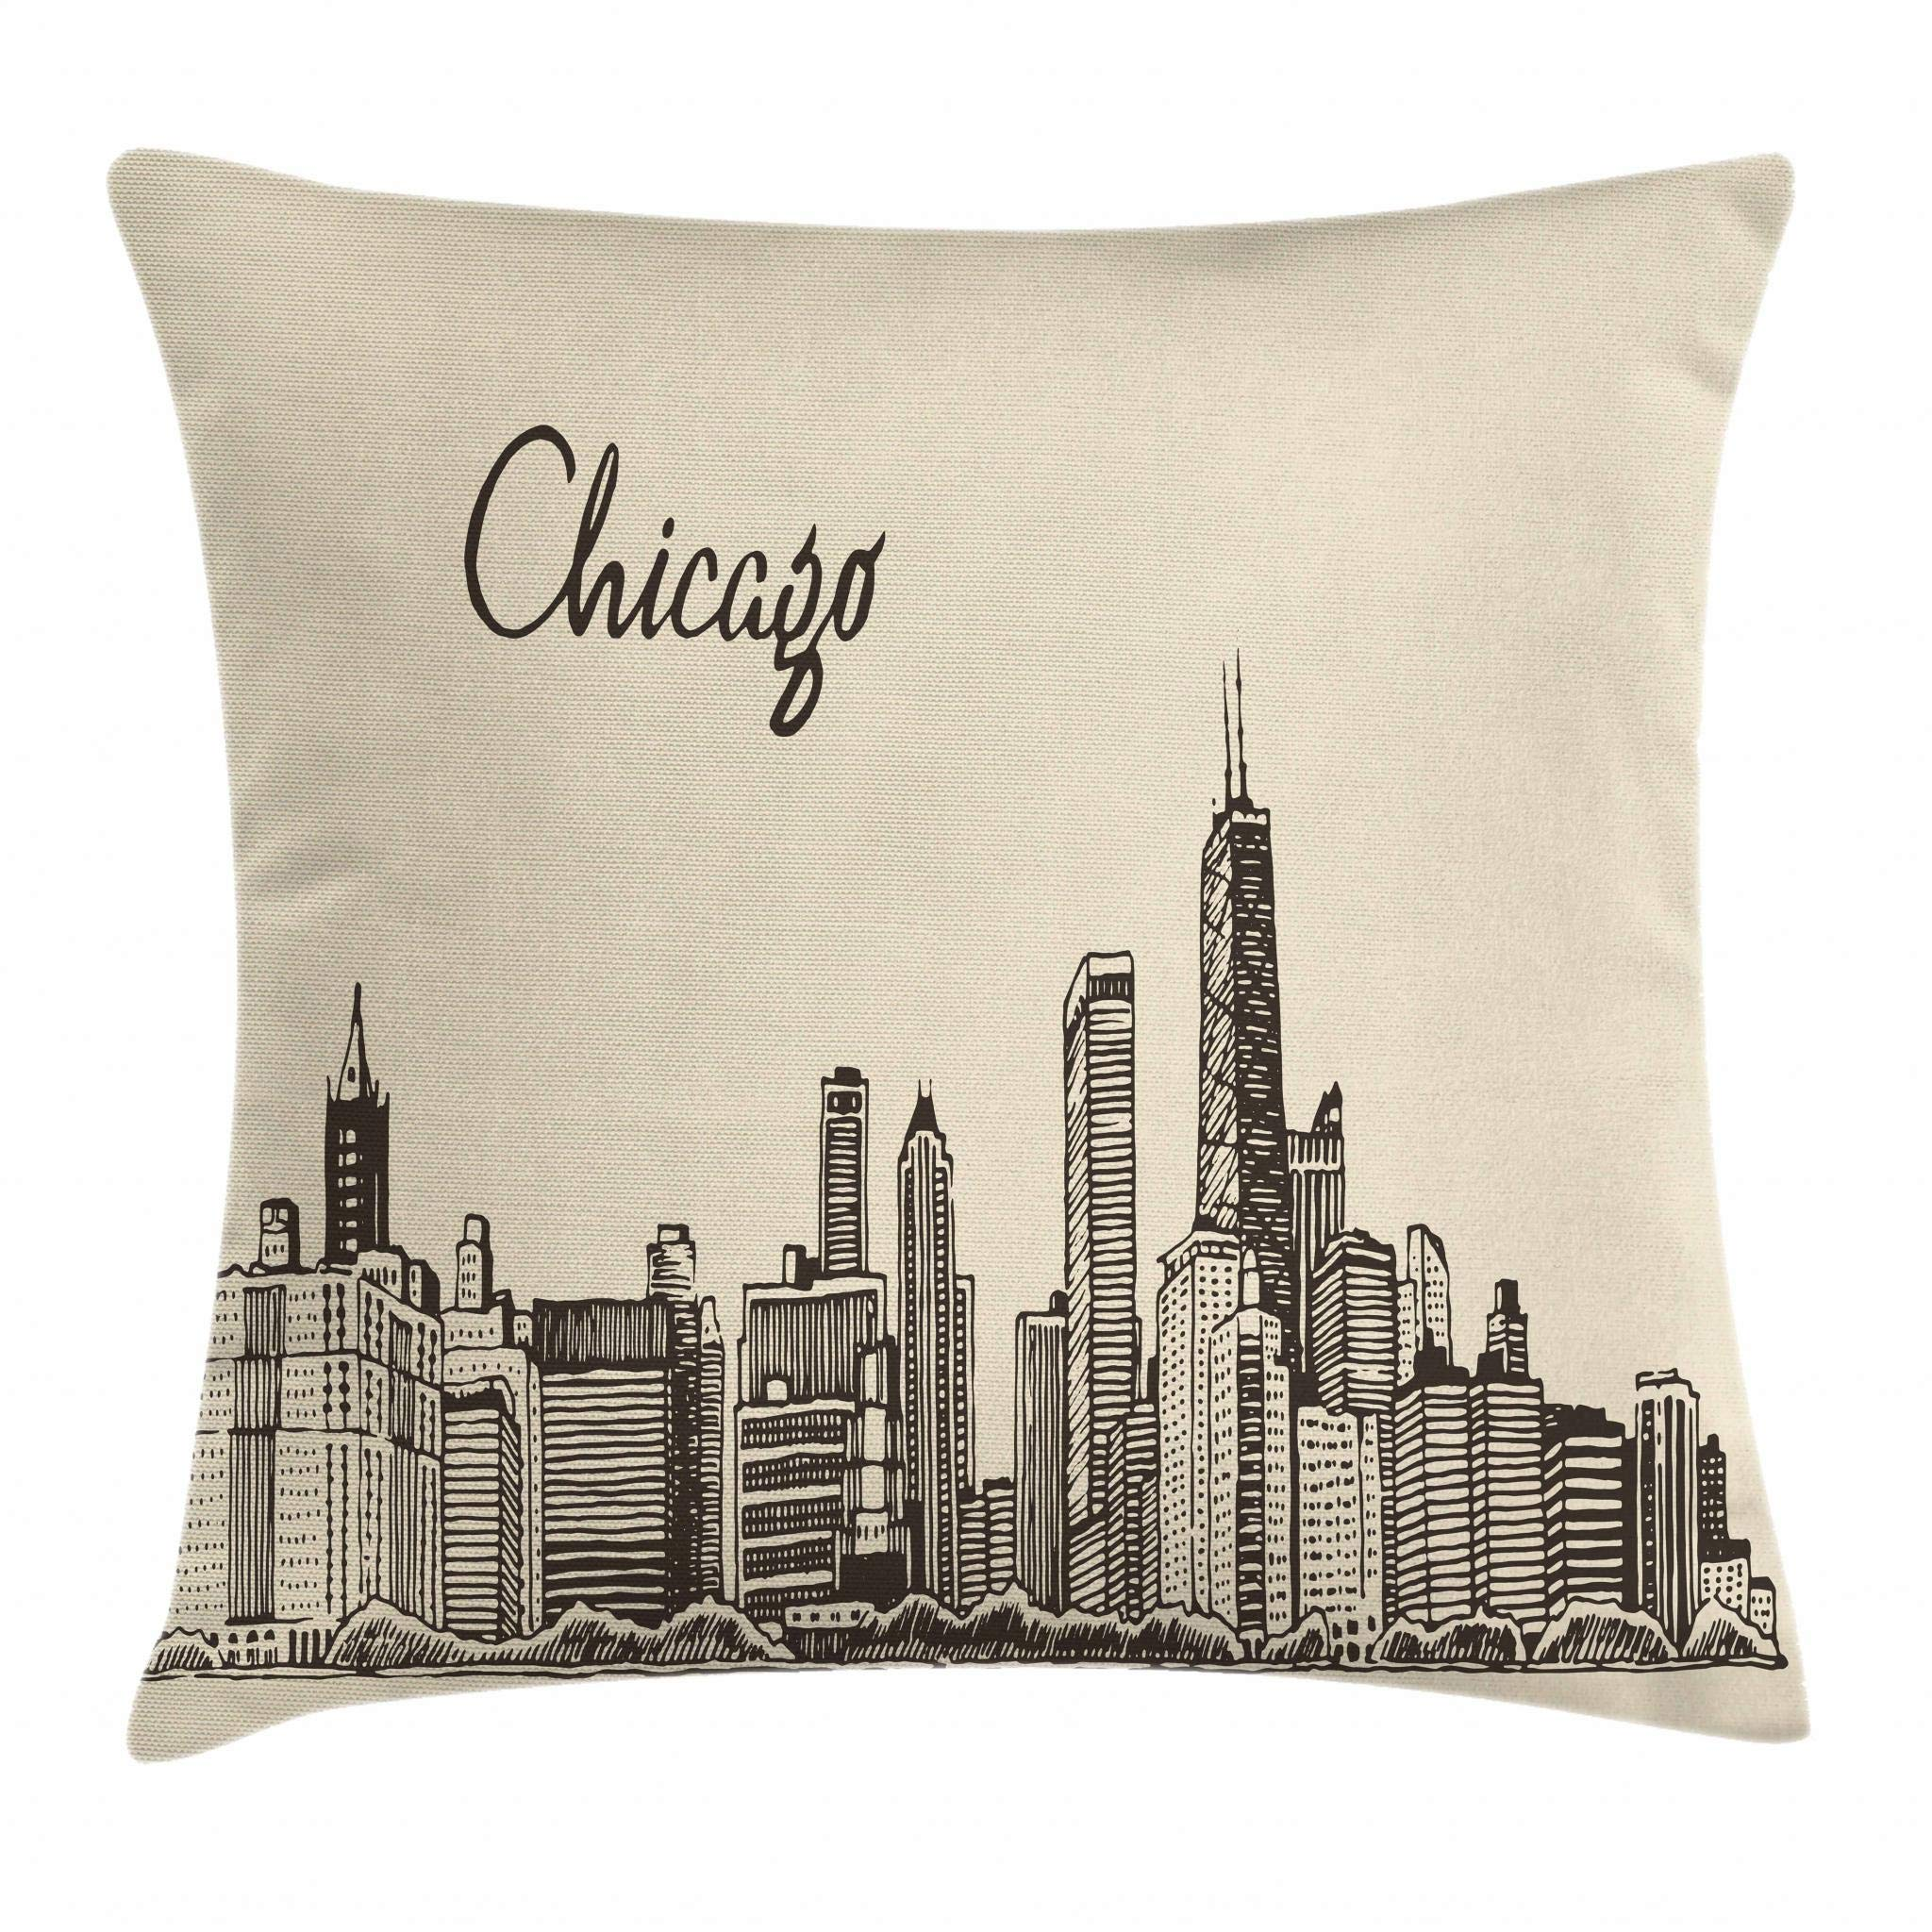 Ambesonne Chicago Skyline Throw Pillow Cushion Cover, Vintage Style Urban Silhouette Country Culture Architecture Capital, Decorative Square Accent Pillow Case, 20 X 20 Inches, Beige Dark Brown